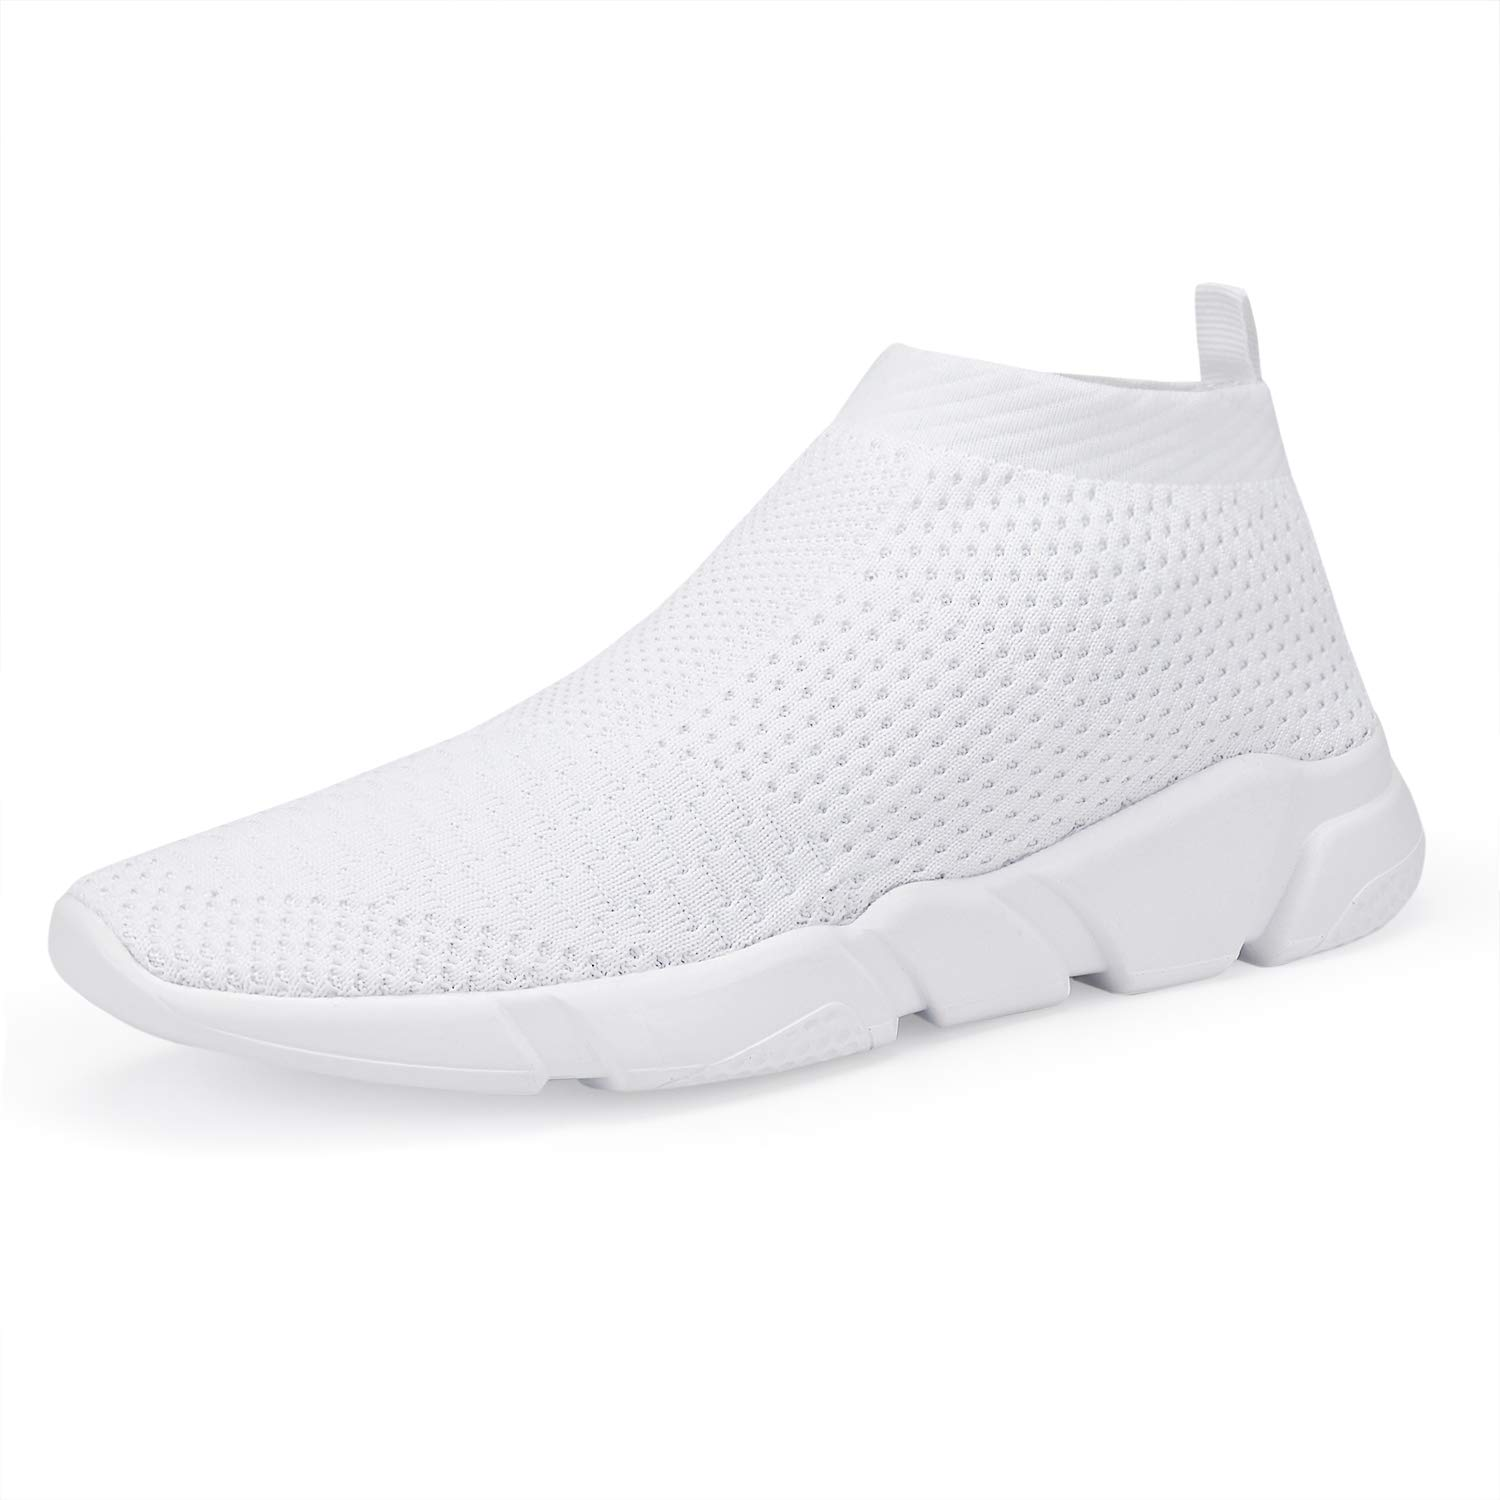 f26cb37600a65 Galleon - WXQ Men's Athletic Walking Shoes Lightweight Fashion Sneakers  Breathable Flyknit Running Shoes White 41